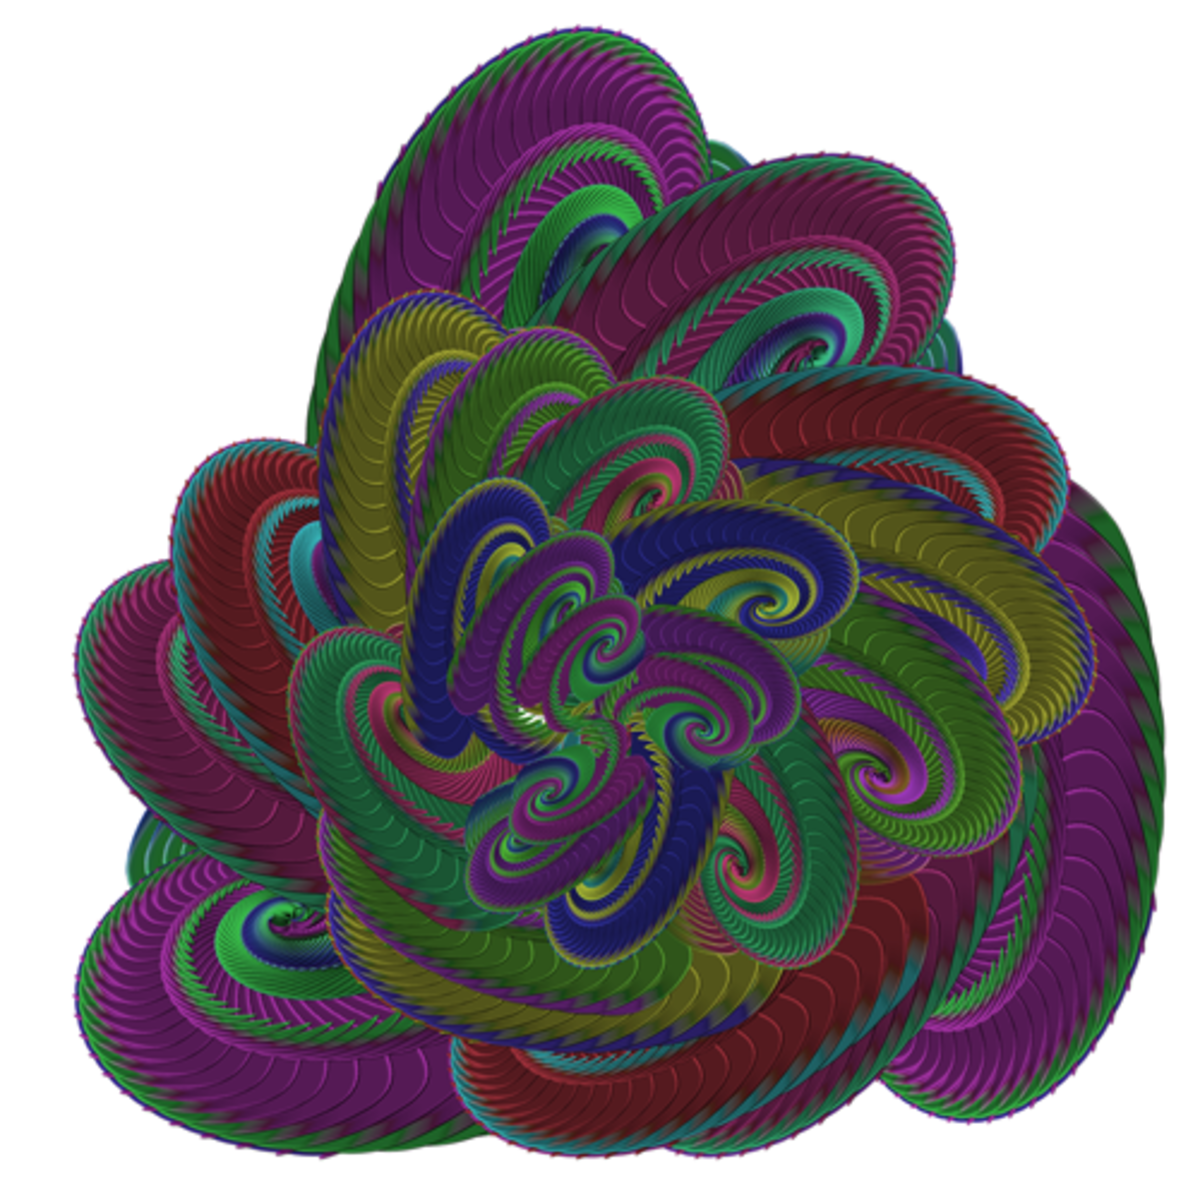 A 'coil of snakes' made by overlaying the pattern on the left while changing color